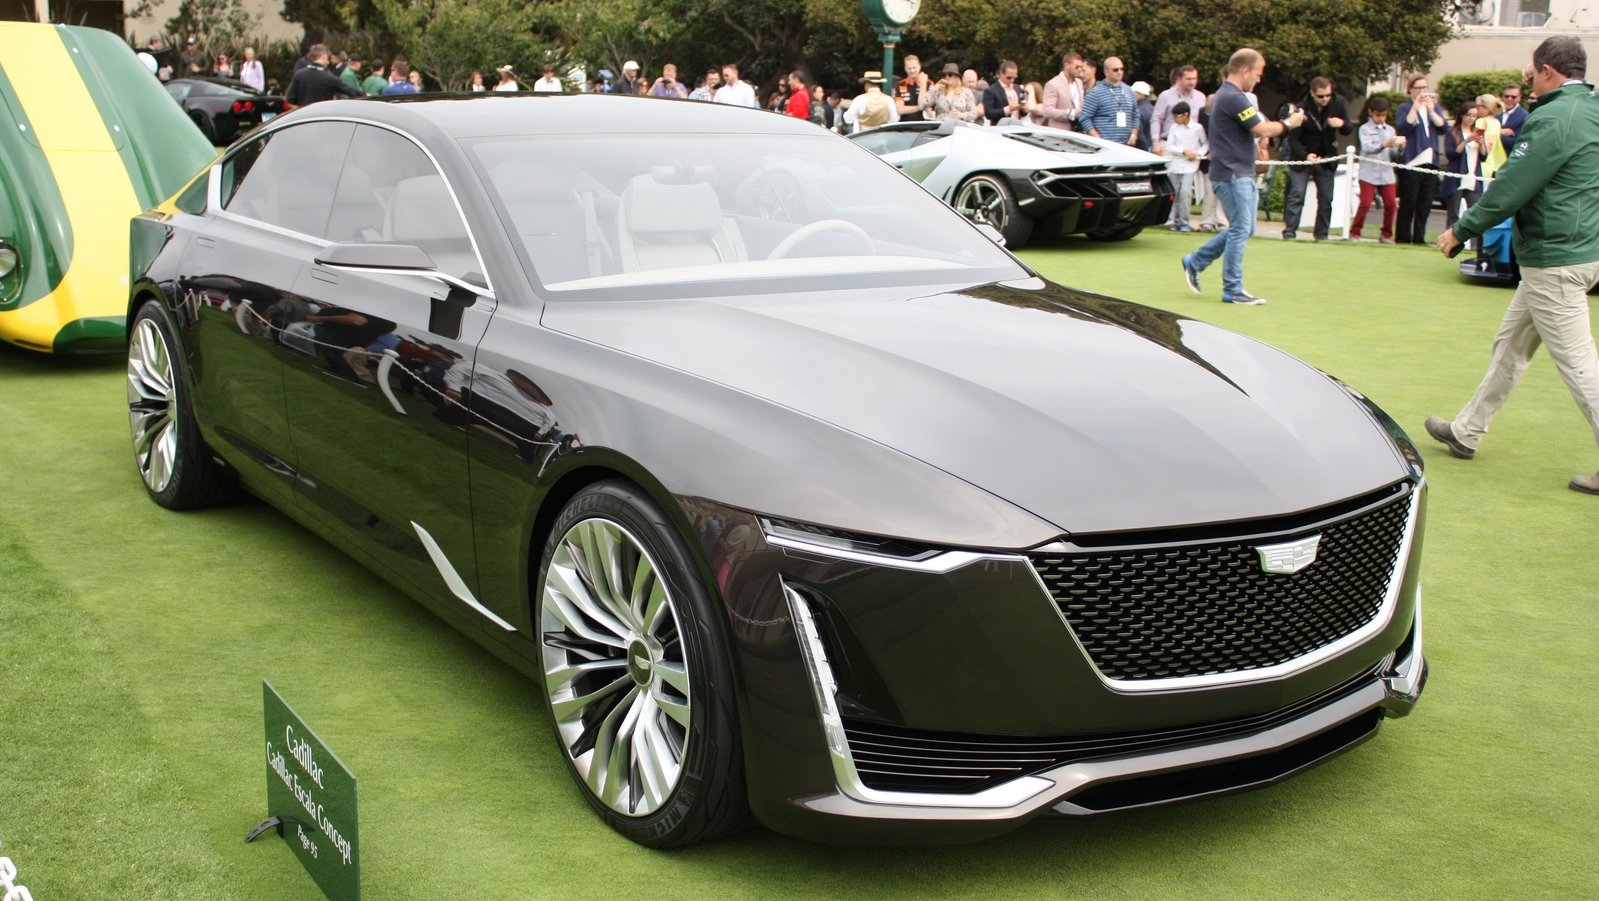 Cadillac Concept Car For Sale